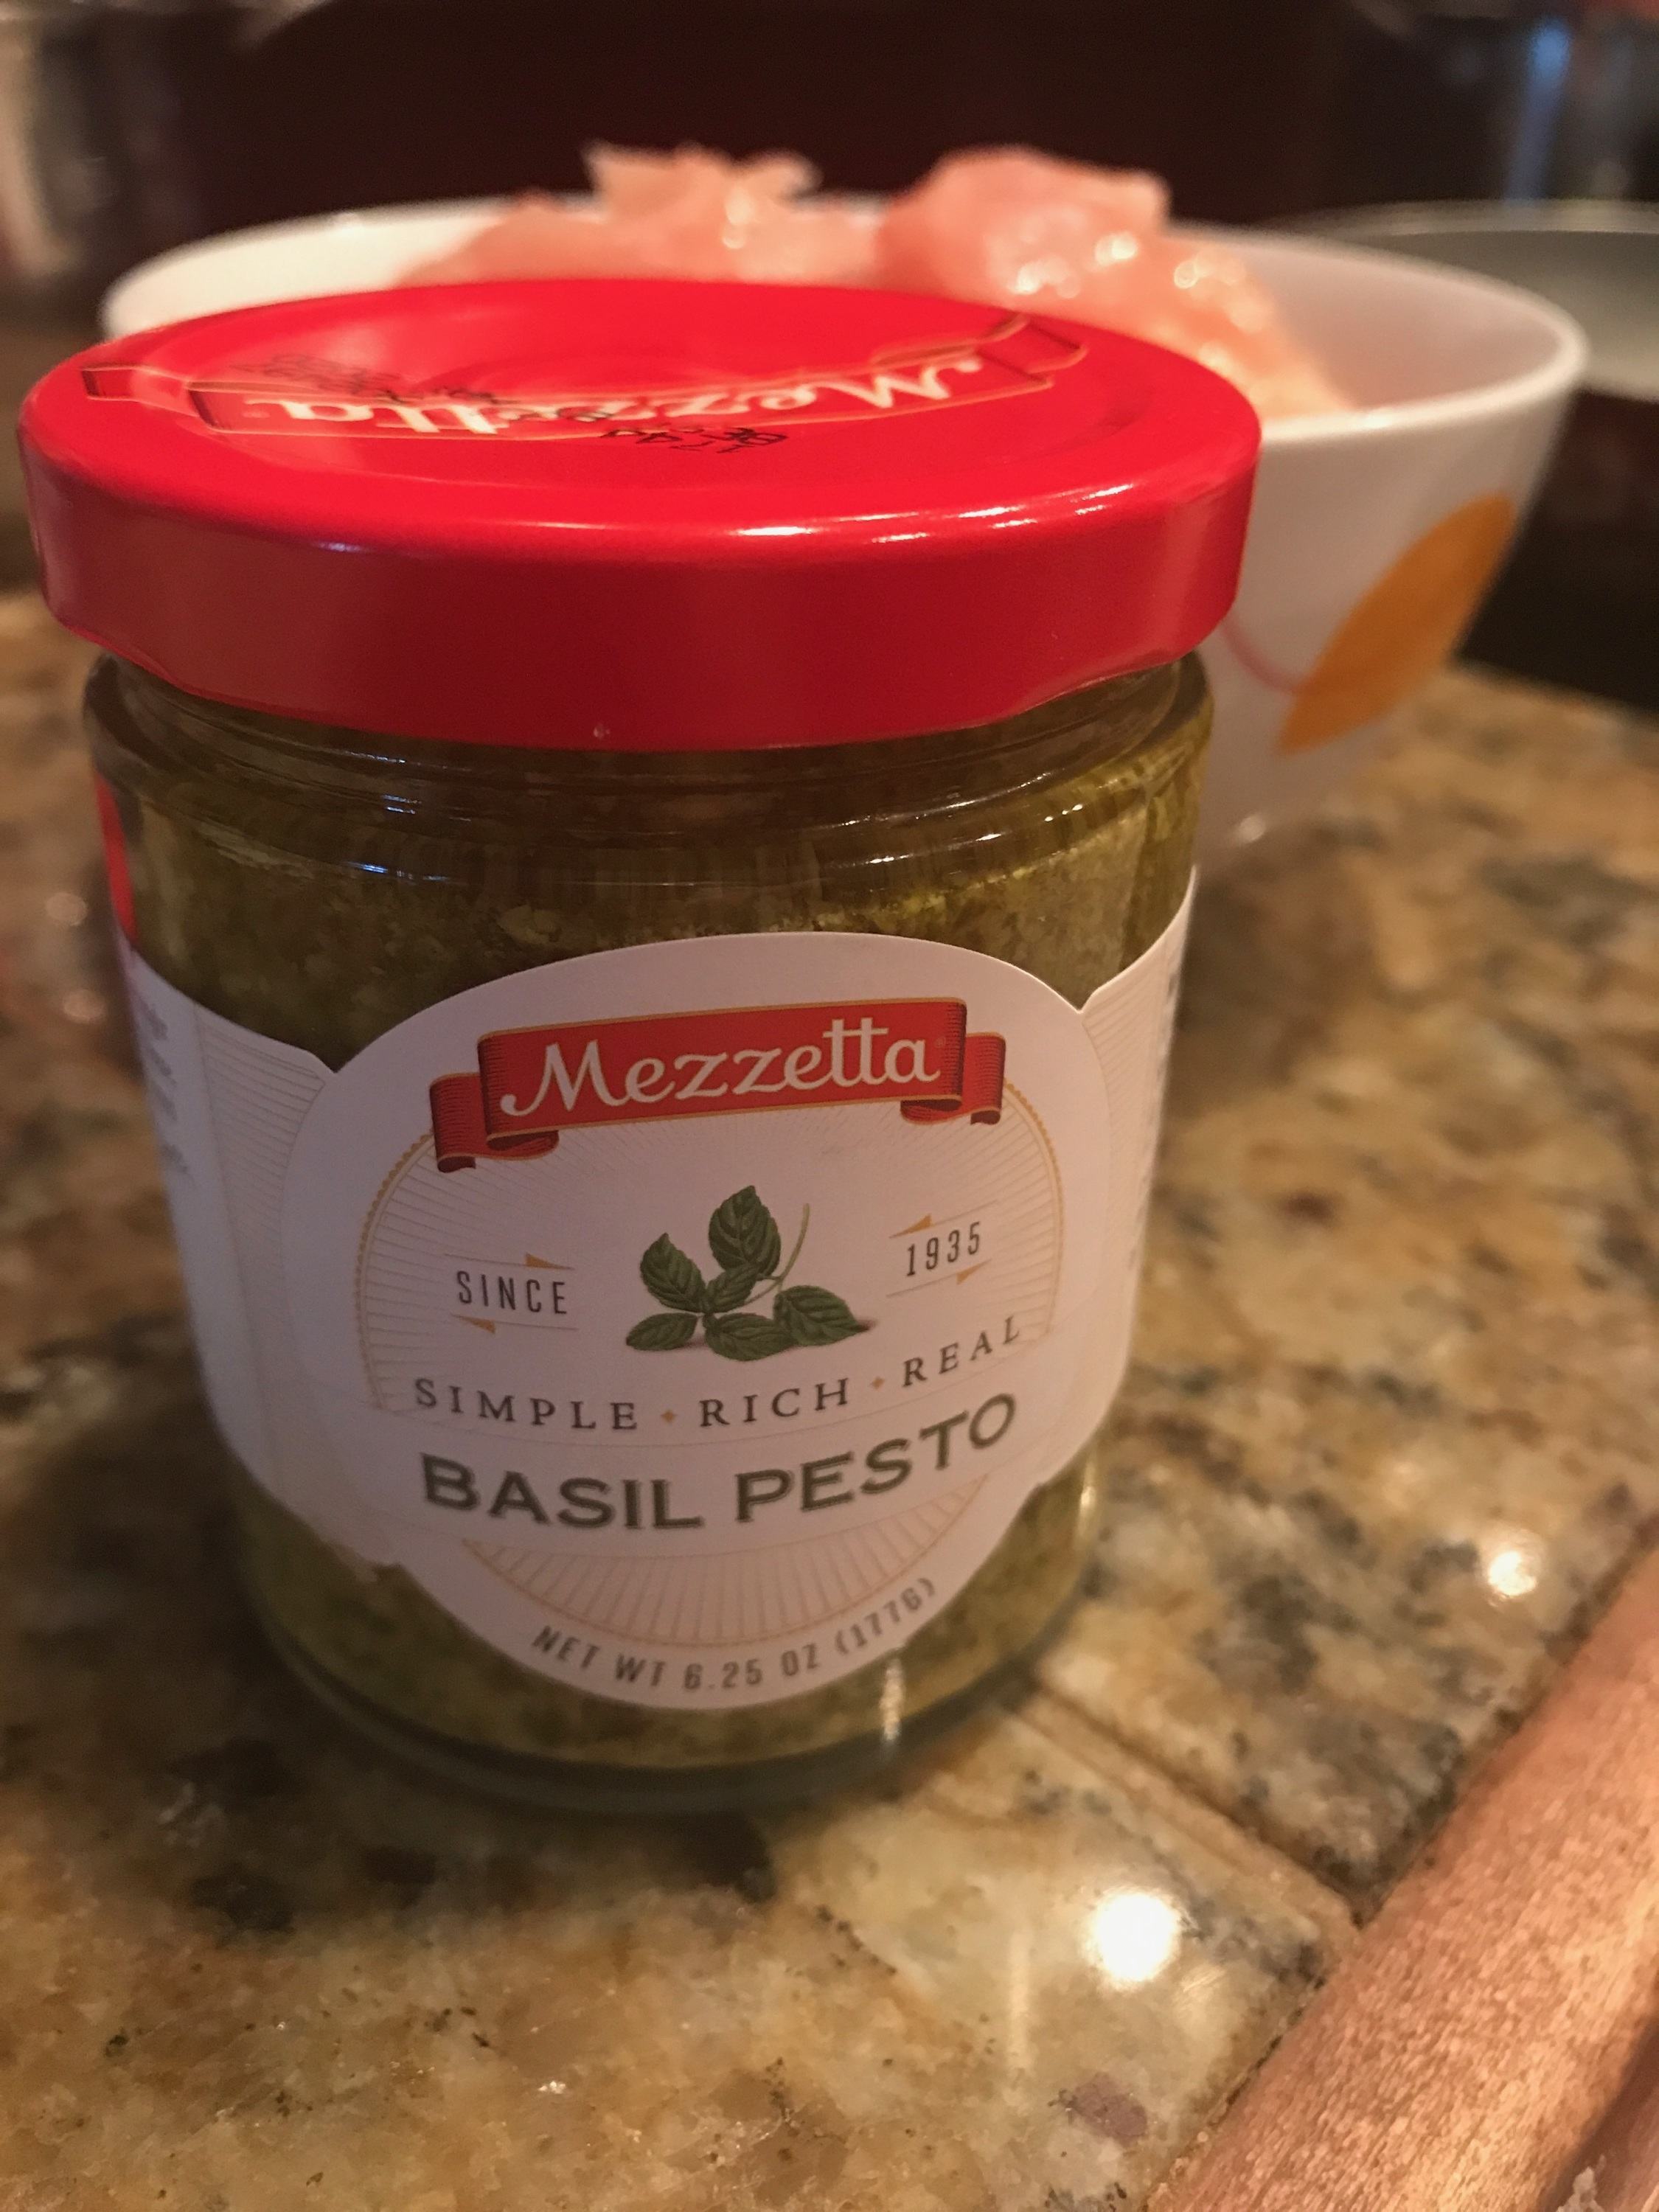 My favorite pesto